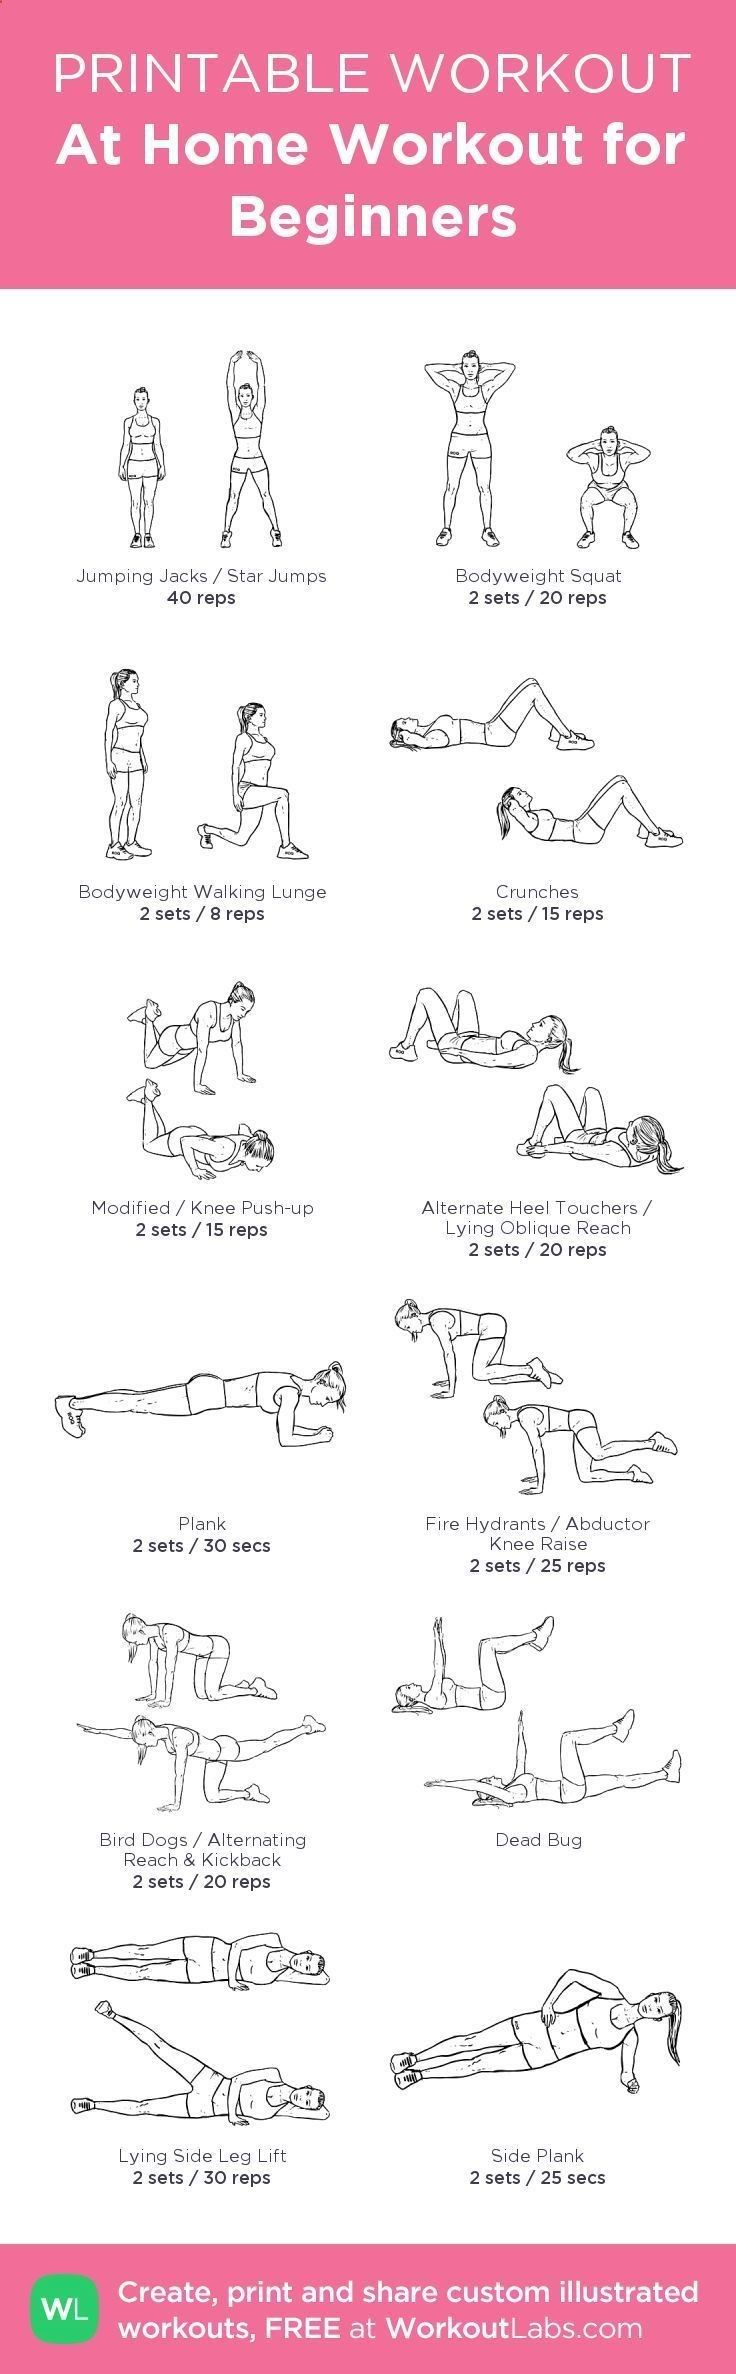 best exercise to lose fat, exercises to lose weight, lose belly fat - At Home Workout for Beginners: my visual workout created at WorkoutLabs.com • Click through to customize and download as a FREE PDF! #customworkout